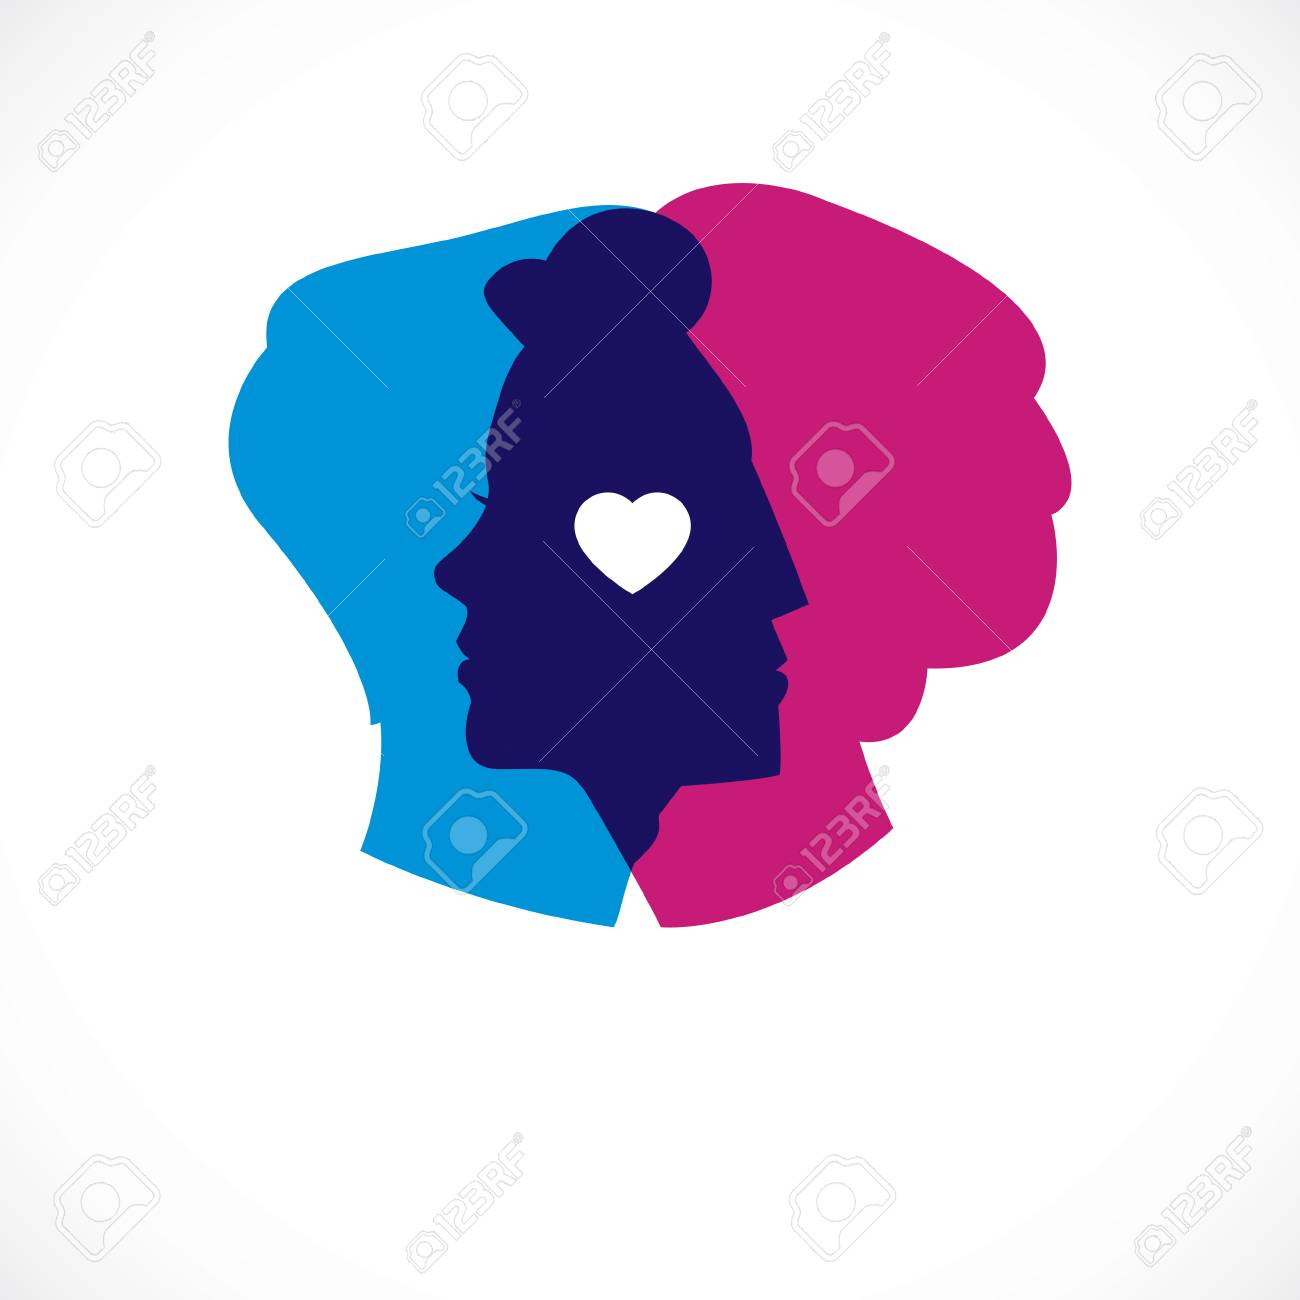 Relationship Psychology Concept Created With Man And Woman Heads